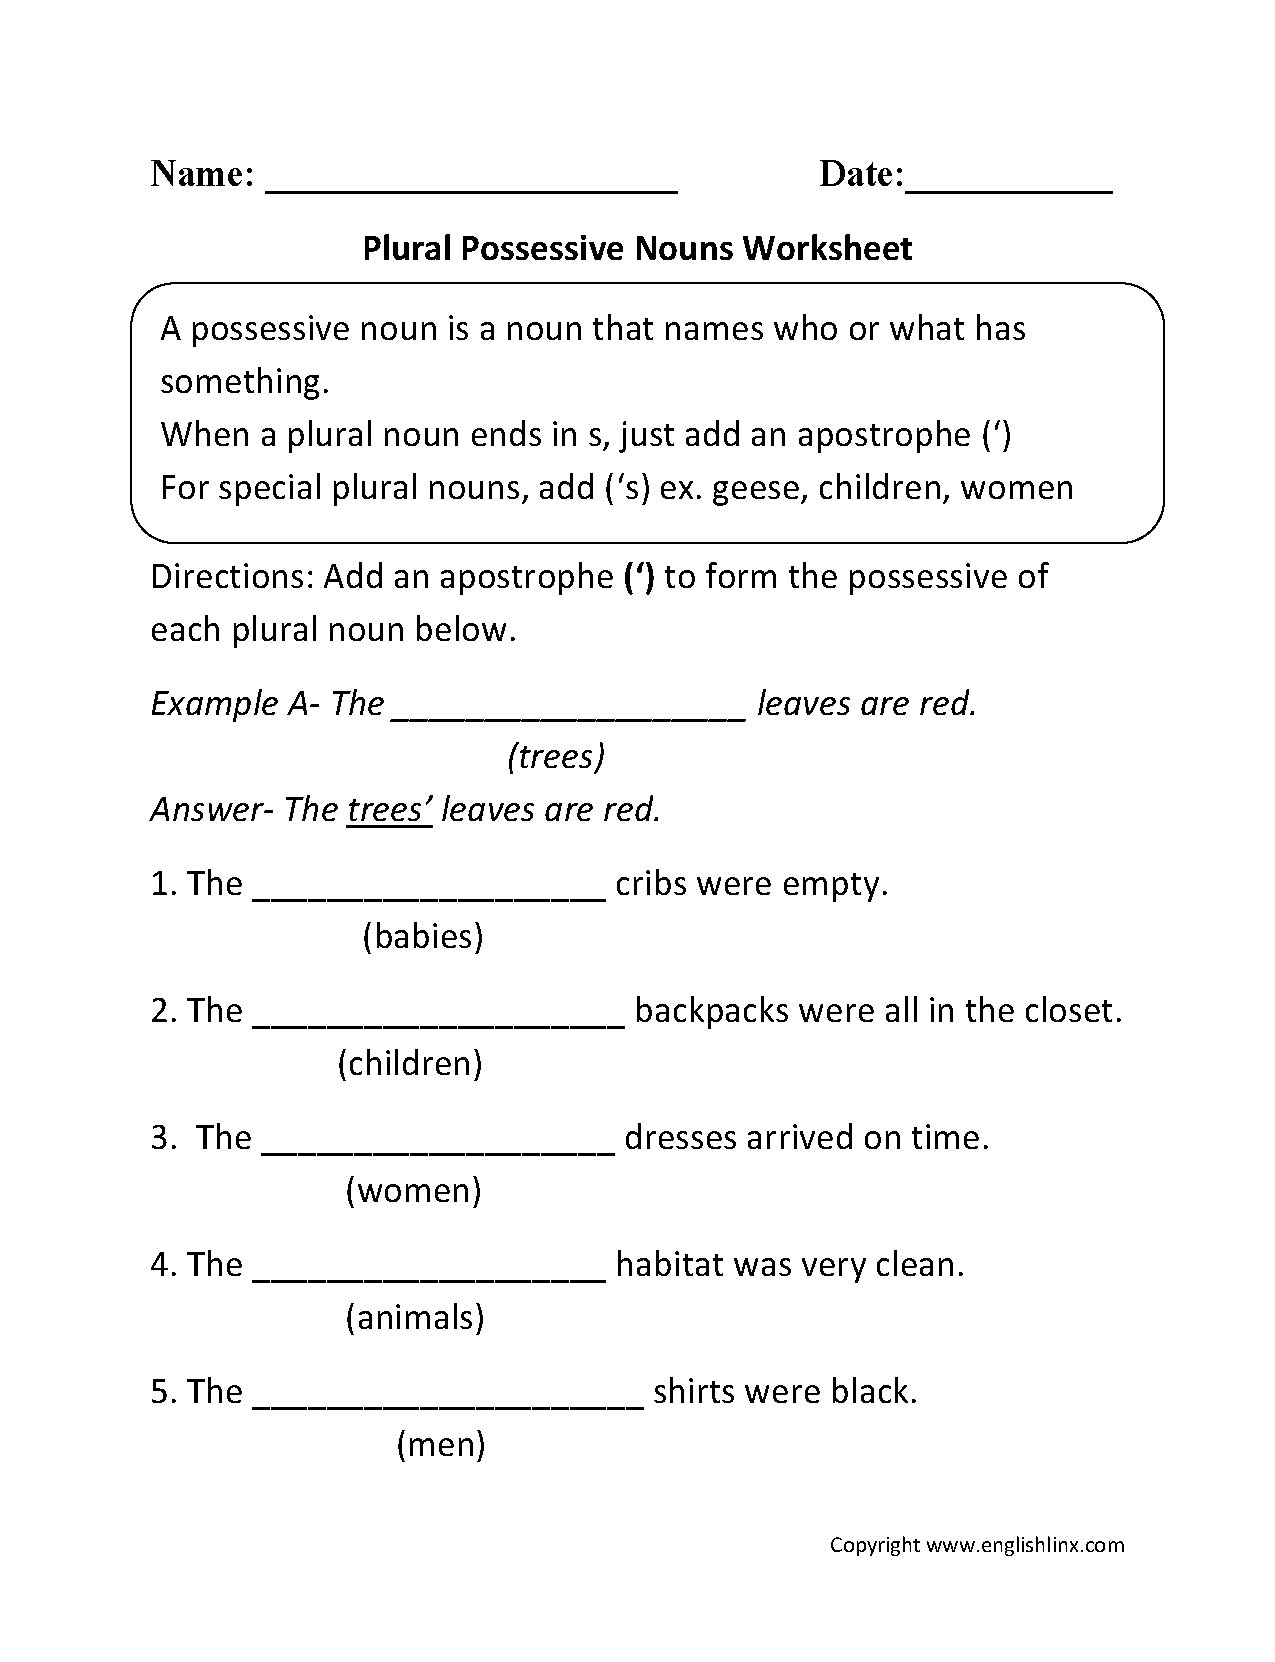 Proatmealus  Picturesque Nouns Worksheets  Possessive Nouns Worksheets With Fetching Possessive Nouns Worksheets With Lovely Anagram Worksheets Also Calories Worksheet In Addition Free Printable Letter B Worksheets And Repeated Addition Multiplication Worksheets As Well As St Grade Activity Worksheets Additionally Percent Word Problems Worksheet Printable From Englishlinxcom With Proatmealus  Fetching Nouns Worksheets  Possessive Nouns Worksheets With Lovely Possessive Nouns Worksheets And Picturesque Anagram Worksheets Also Calories Worksheet In Addition Free Printable Letter B Worksheets From Englishlinxcom